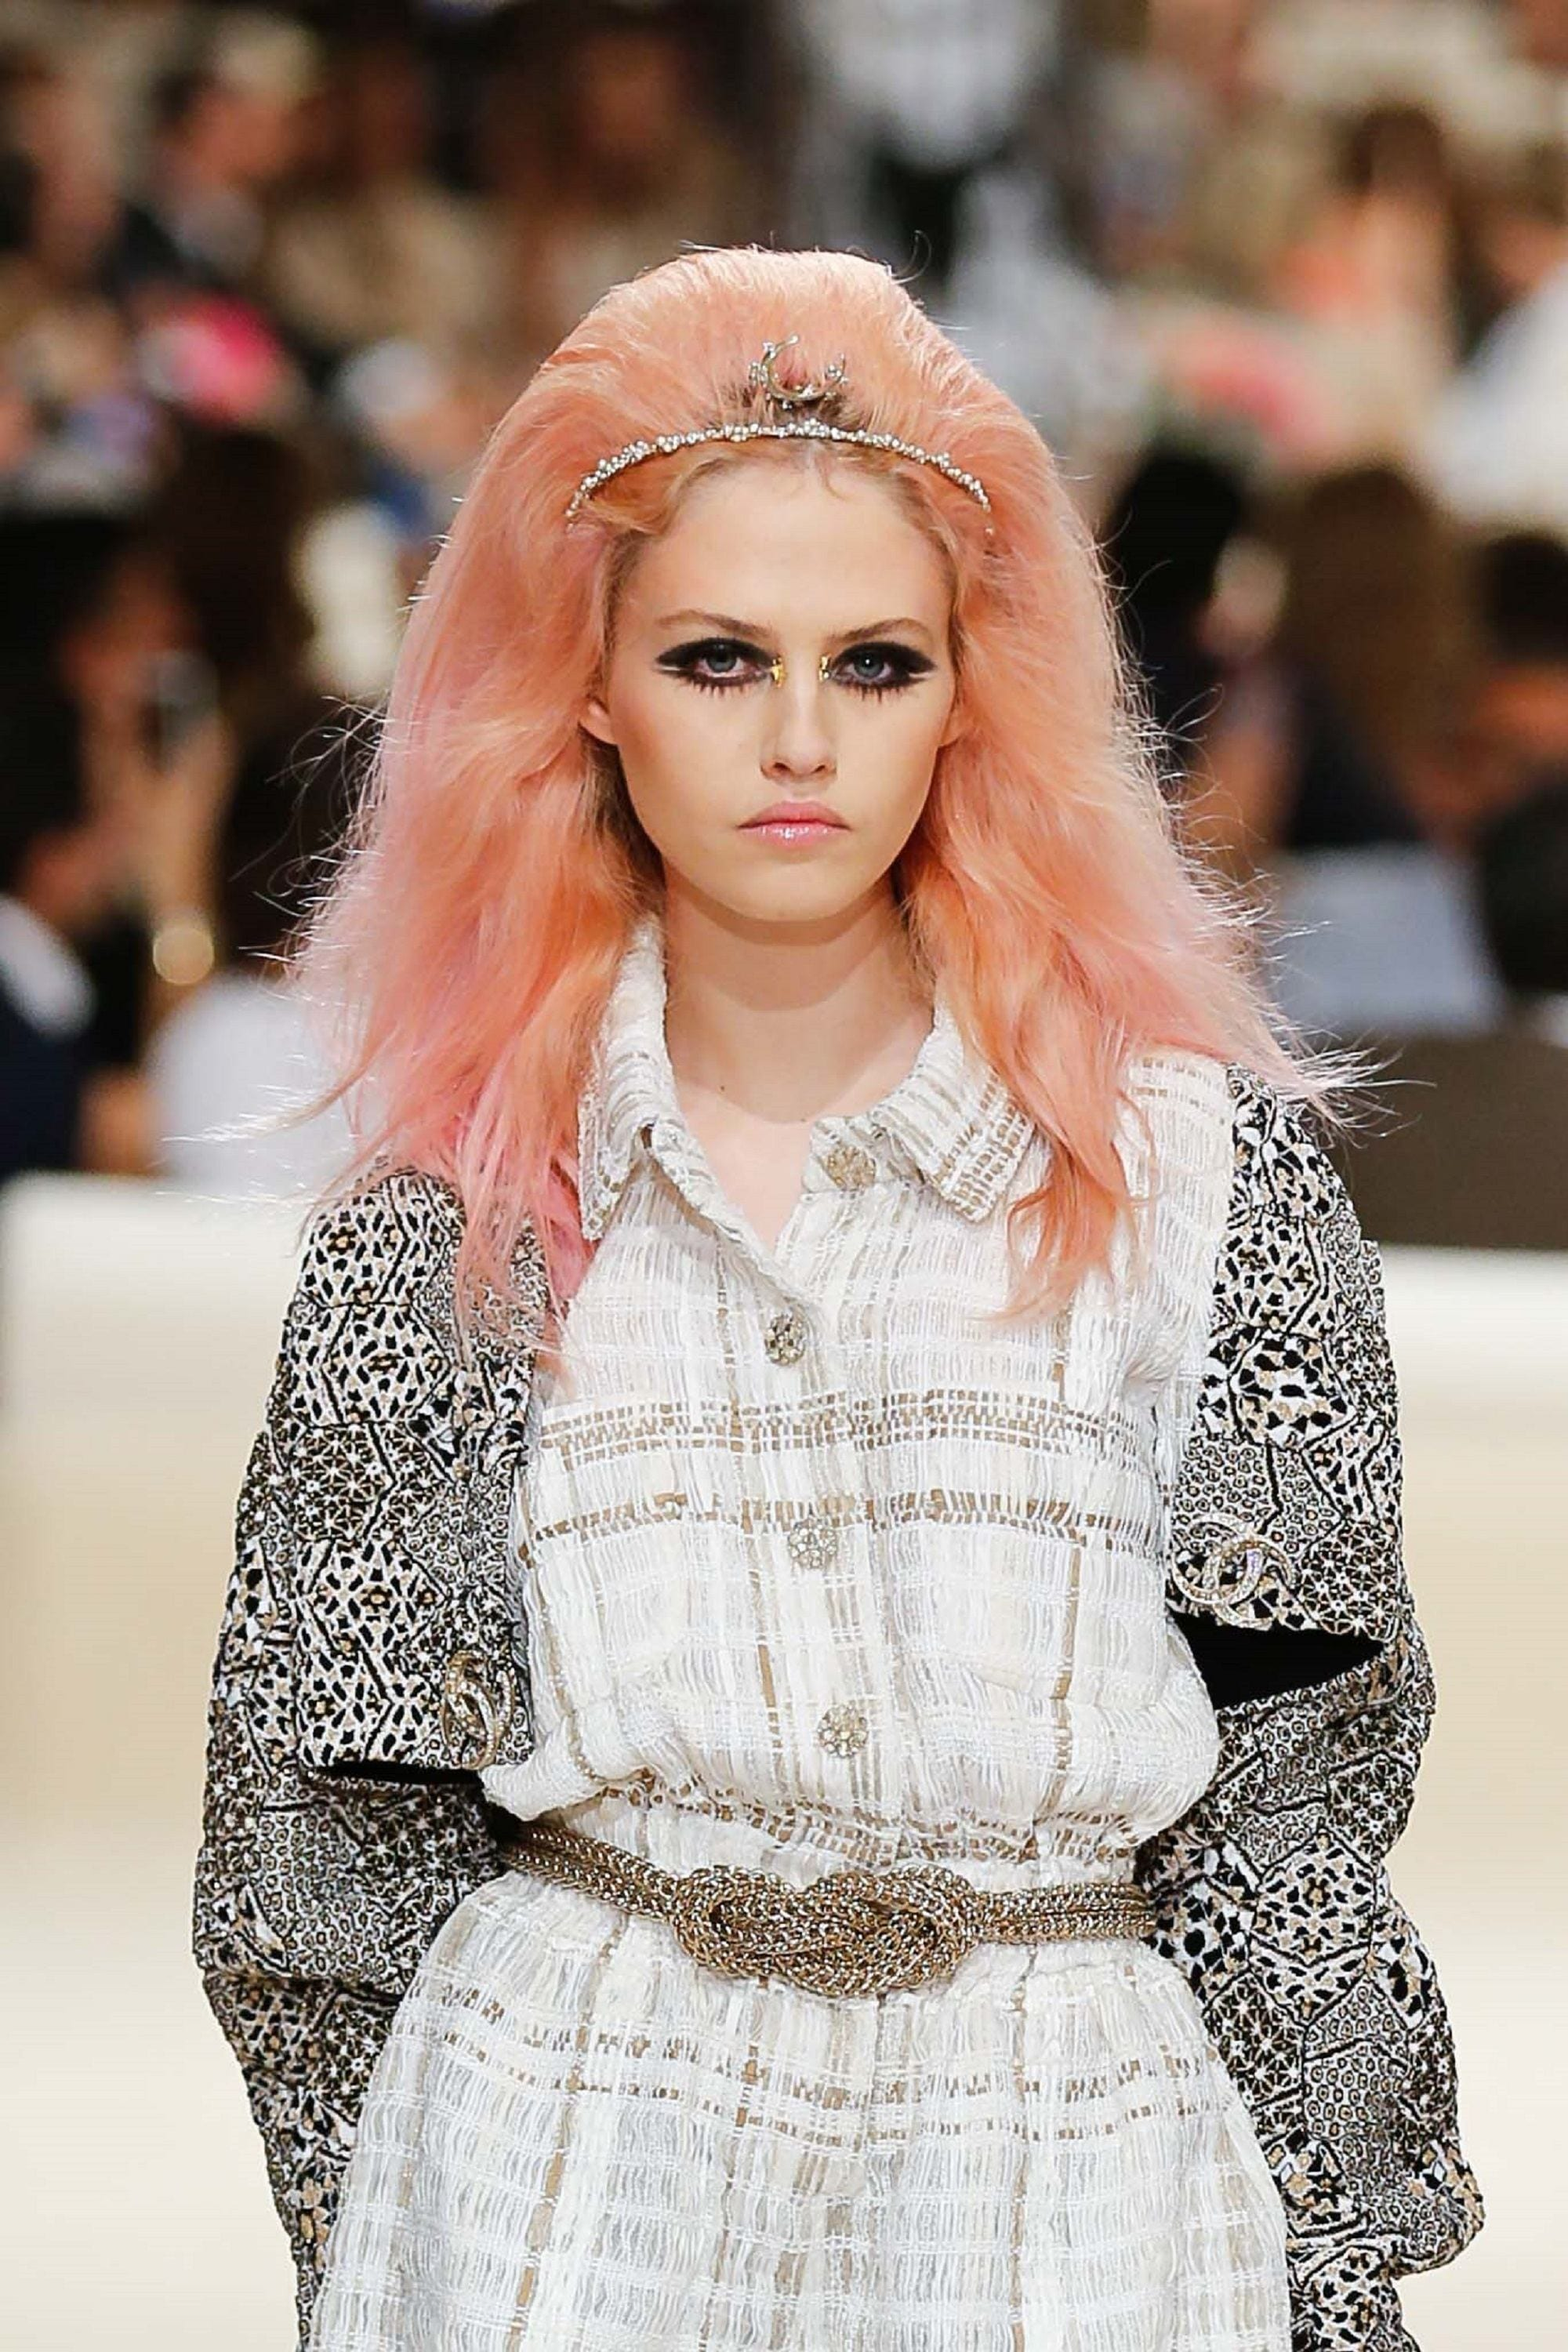 Hair color for fair skin: Caucasian model with long voluminous peach hair wearing a white and gray dress on the runway